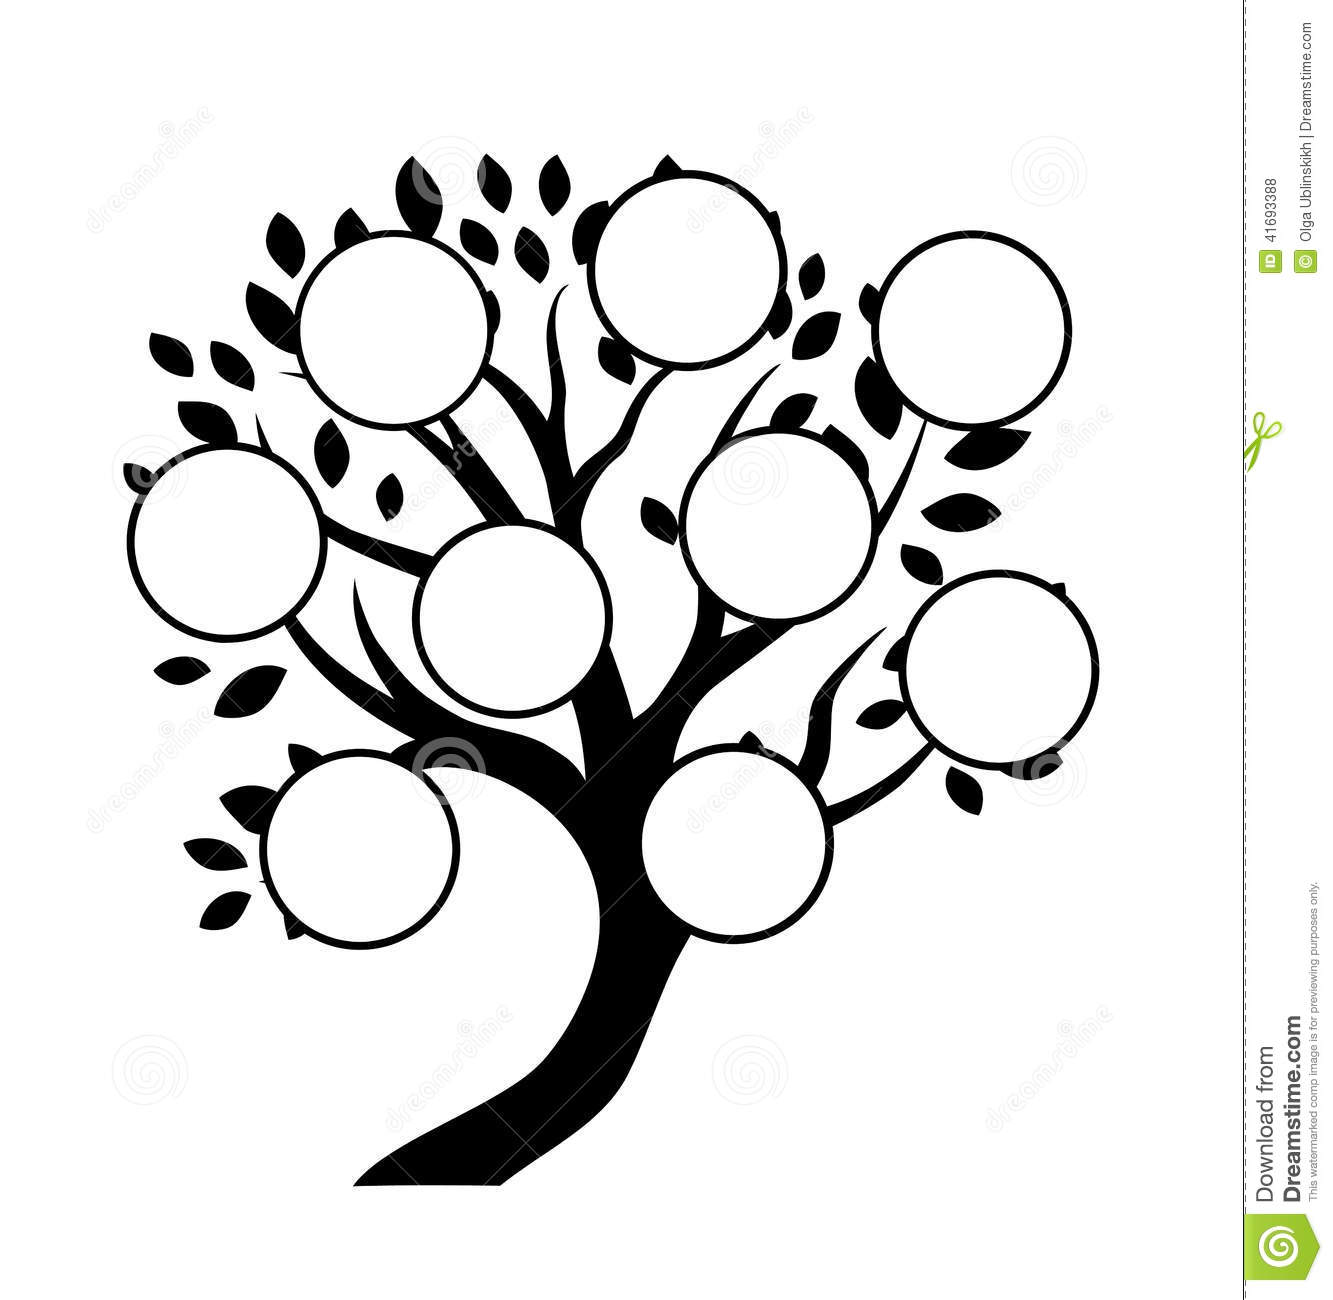 Decorative Family Tree Design Stock Vector